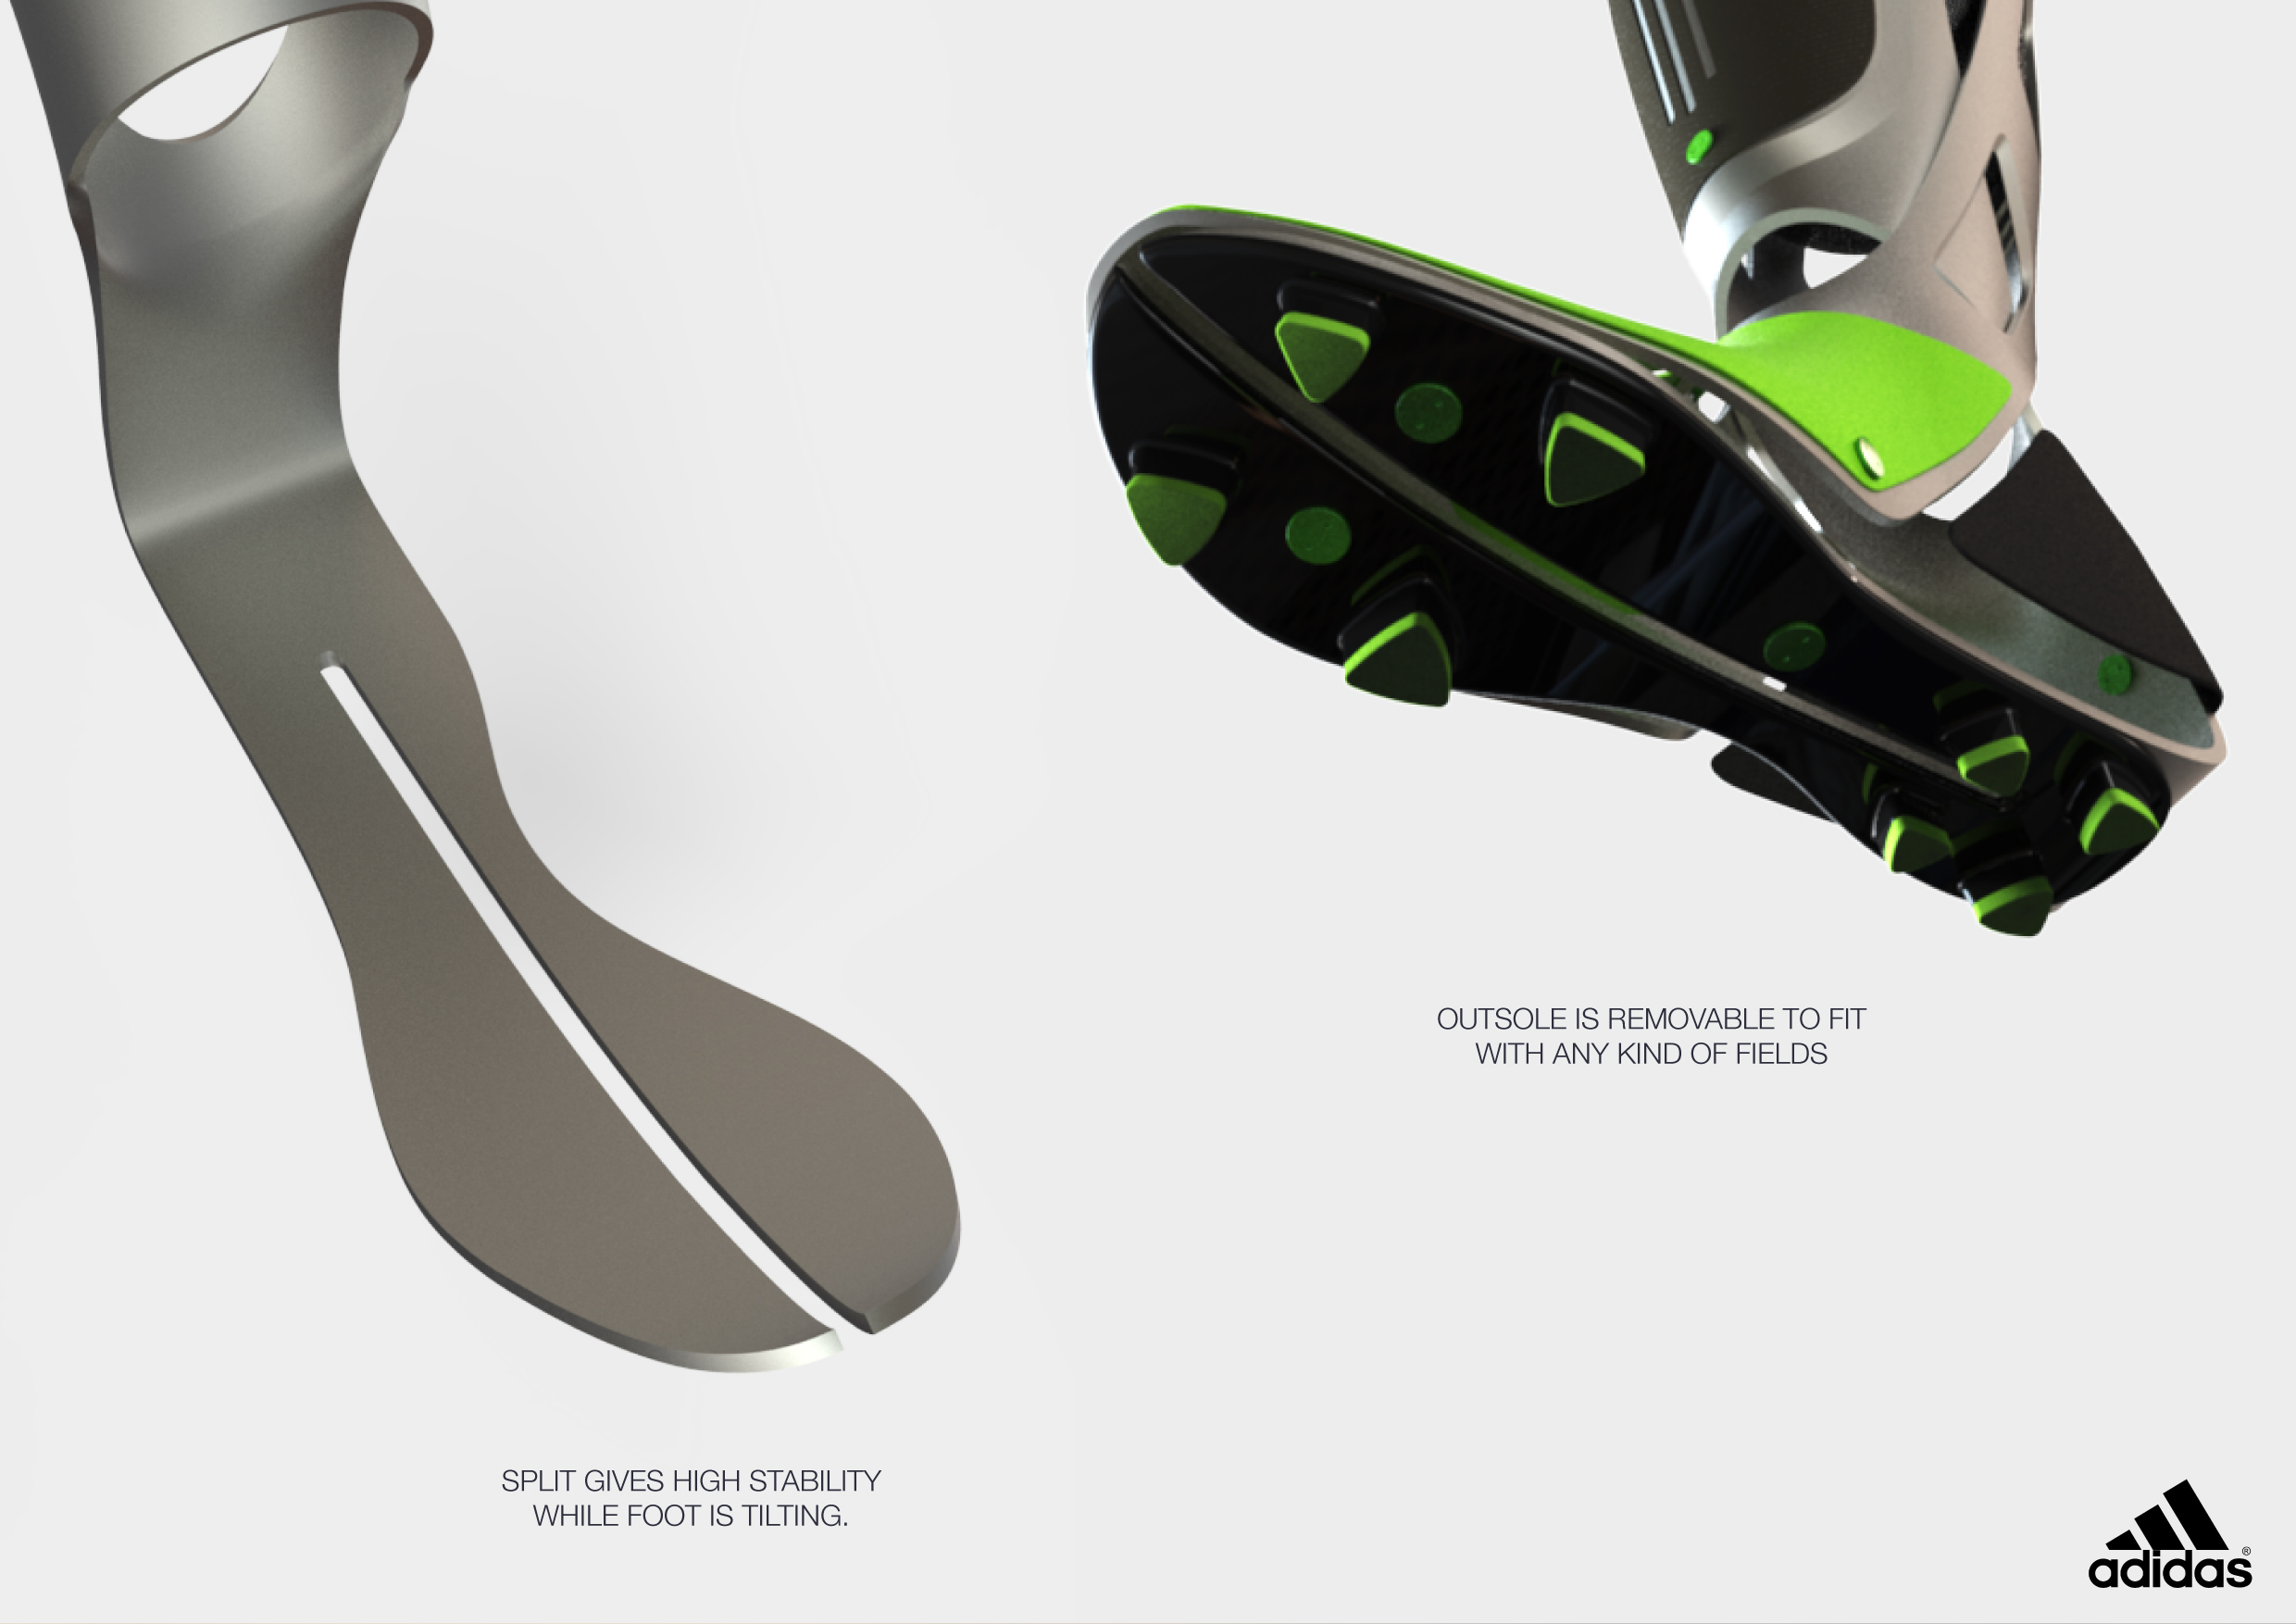 f2aada41f0ef5a ADIDAS IMPETUS - Soccer Prosthetic on Behance